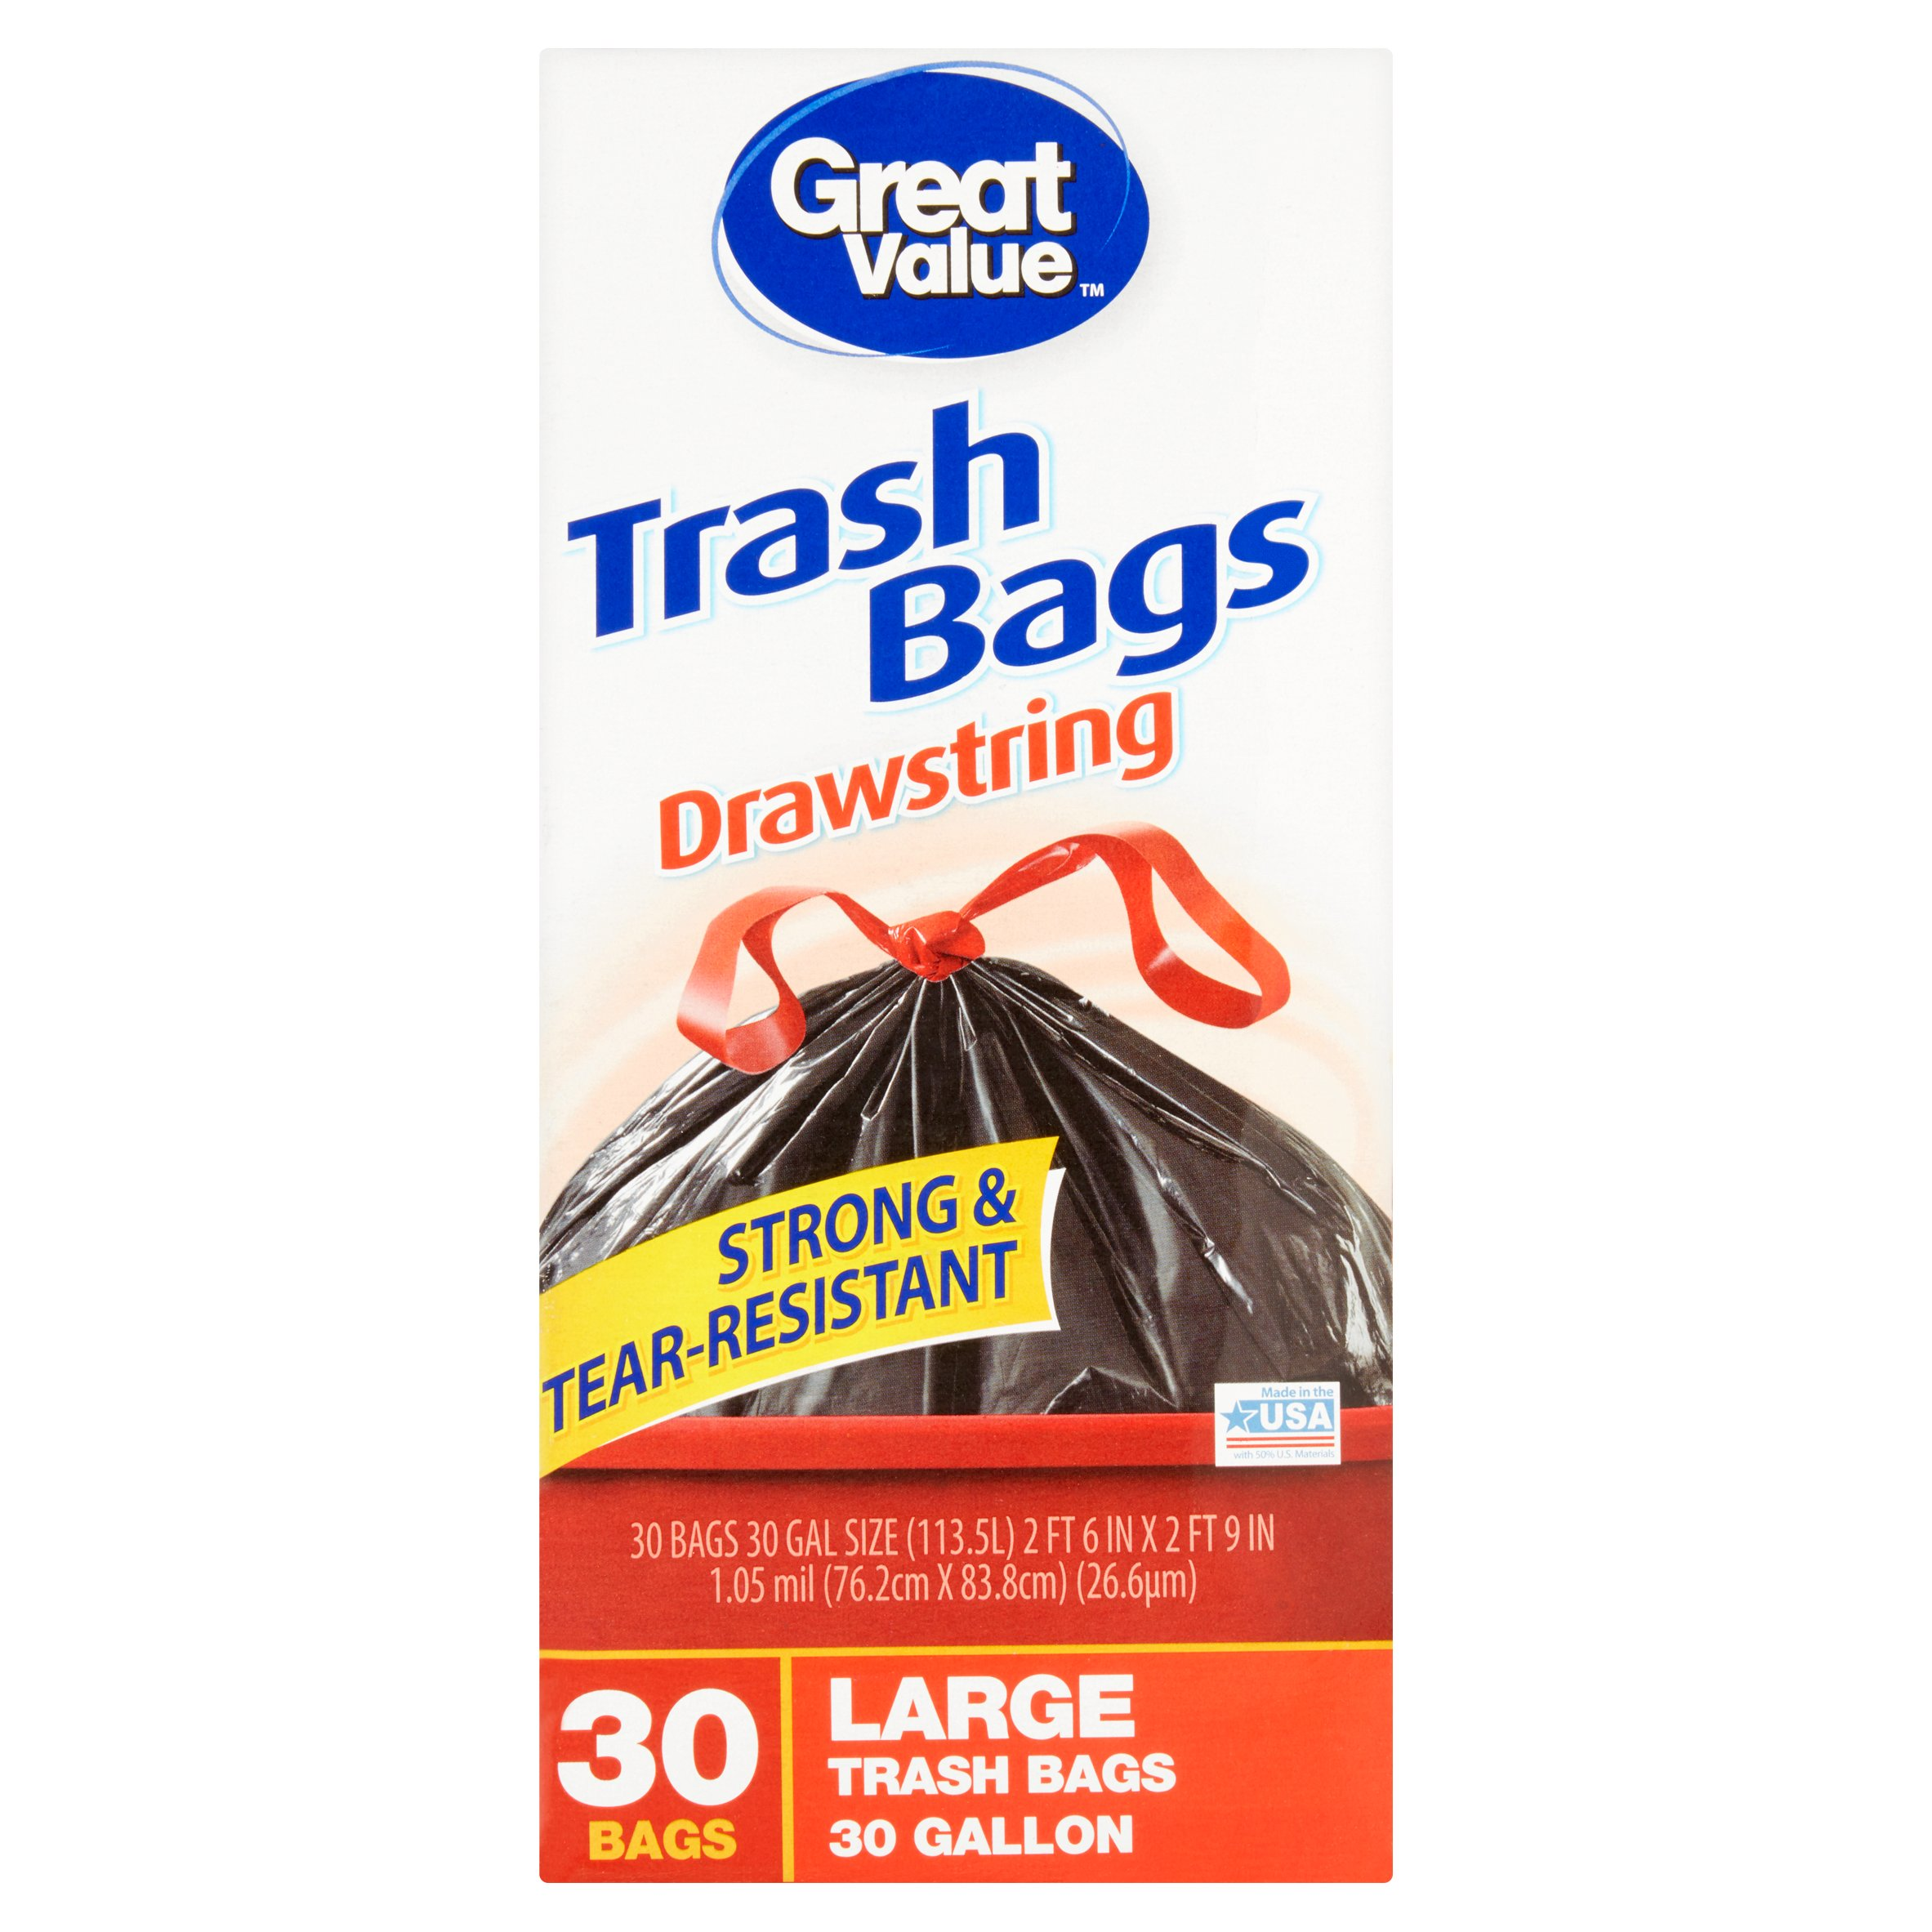 Great Value Drawstring Trash Bags, 30 Gallon, 30 count